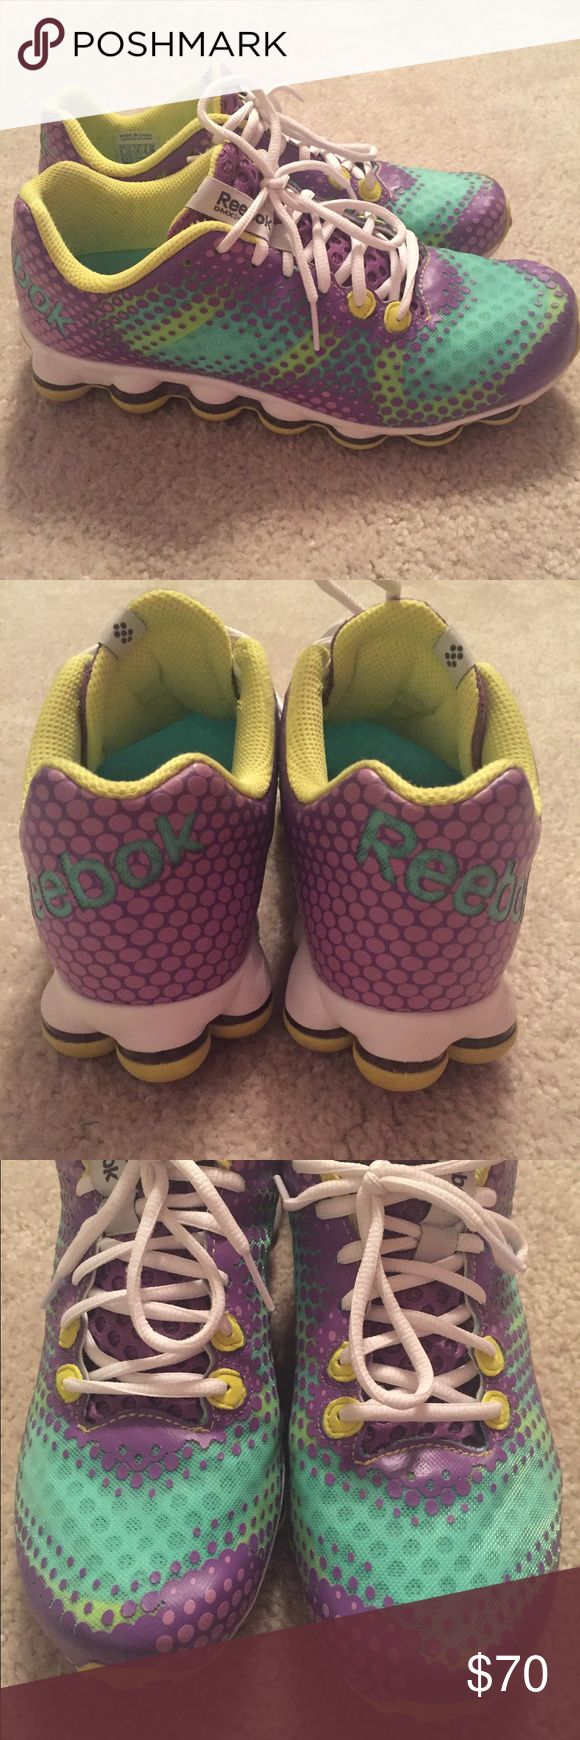 Women's Reebox Women's reebok running shoes. The word reebok on the Inside soles is rubbed off but otherwise, shoes still look great!!! No trades. Smoke free home. Reebok Shoes Athletic Shoes